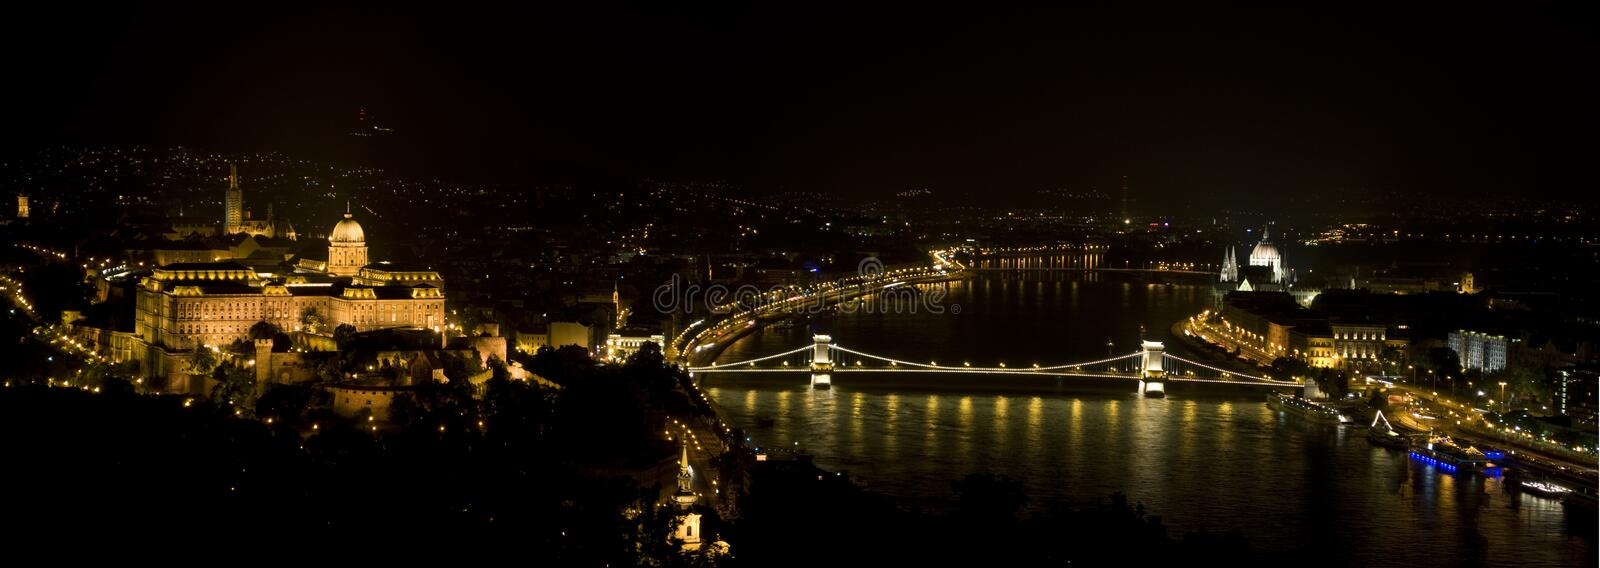 Budapest night royalty free stock image